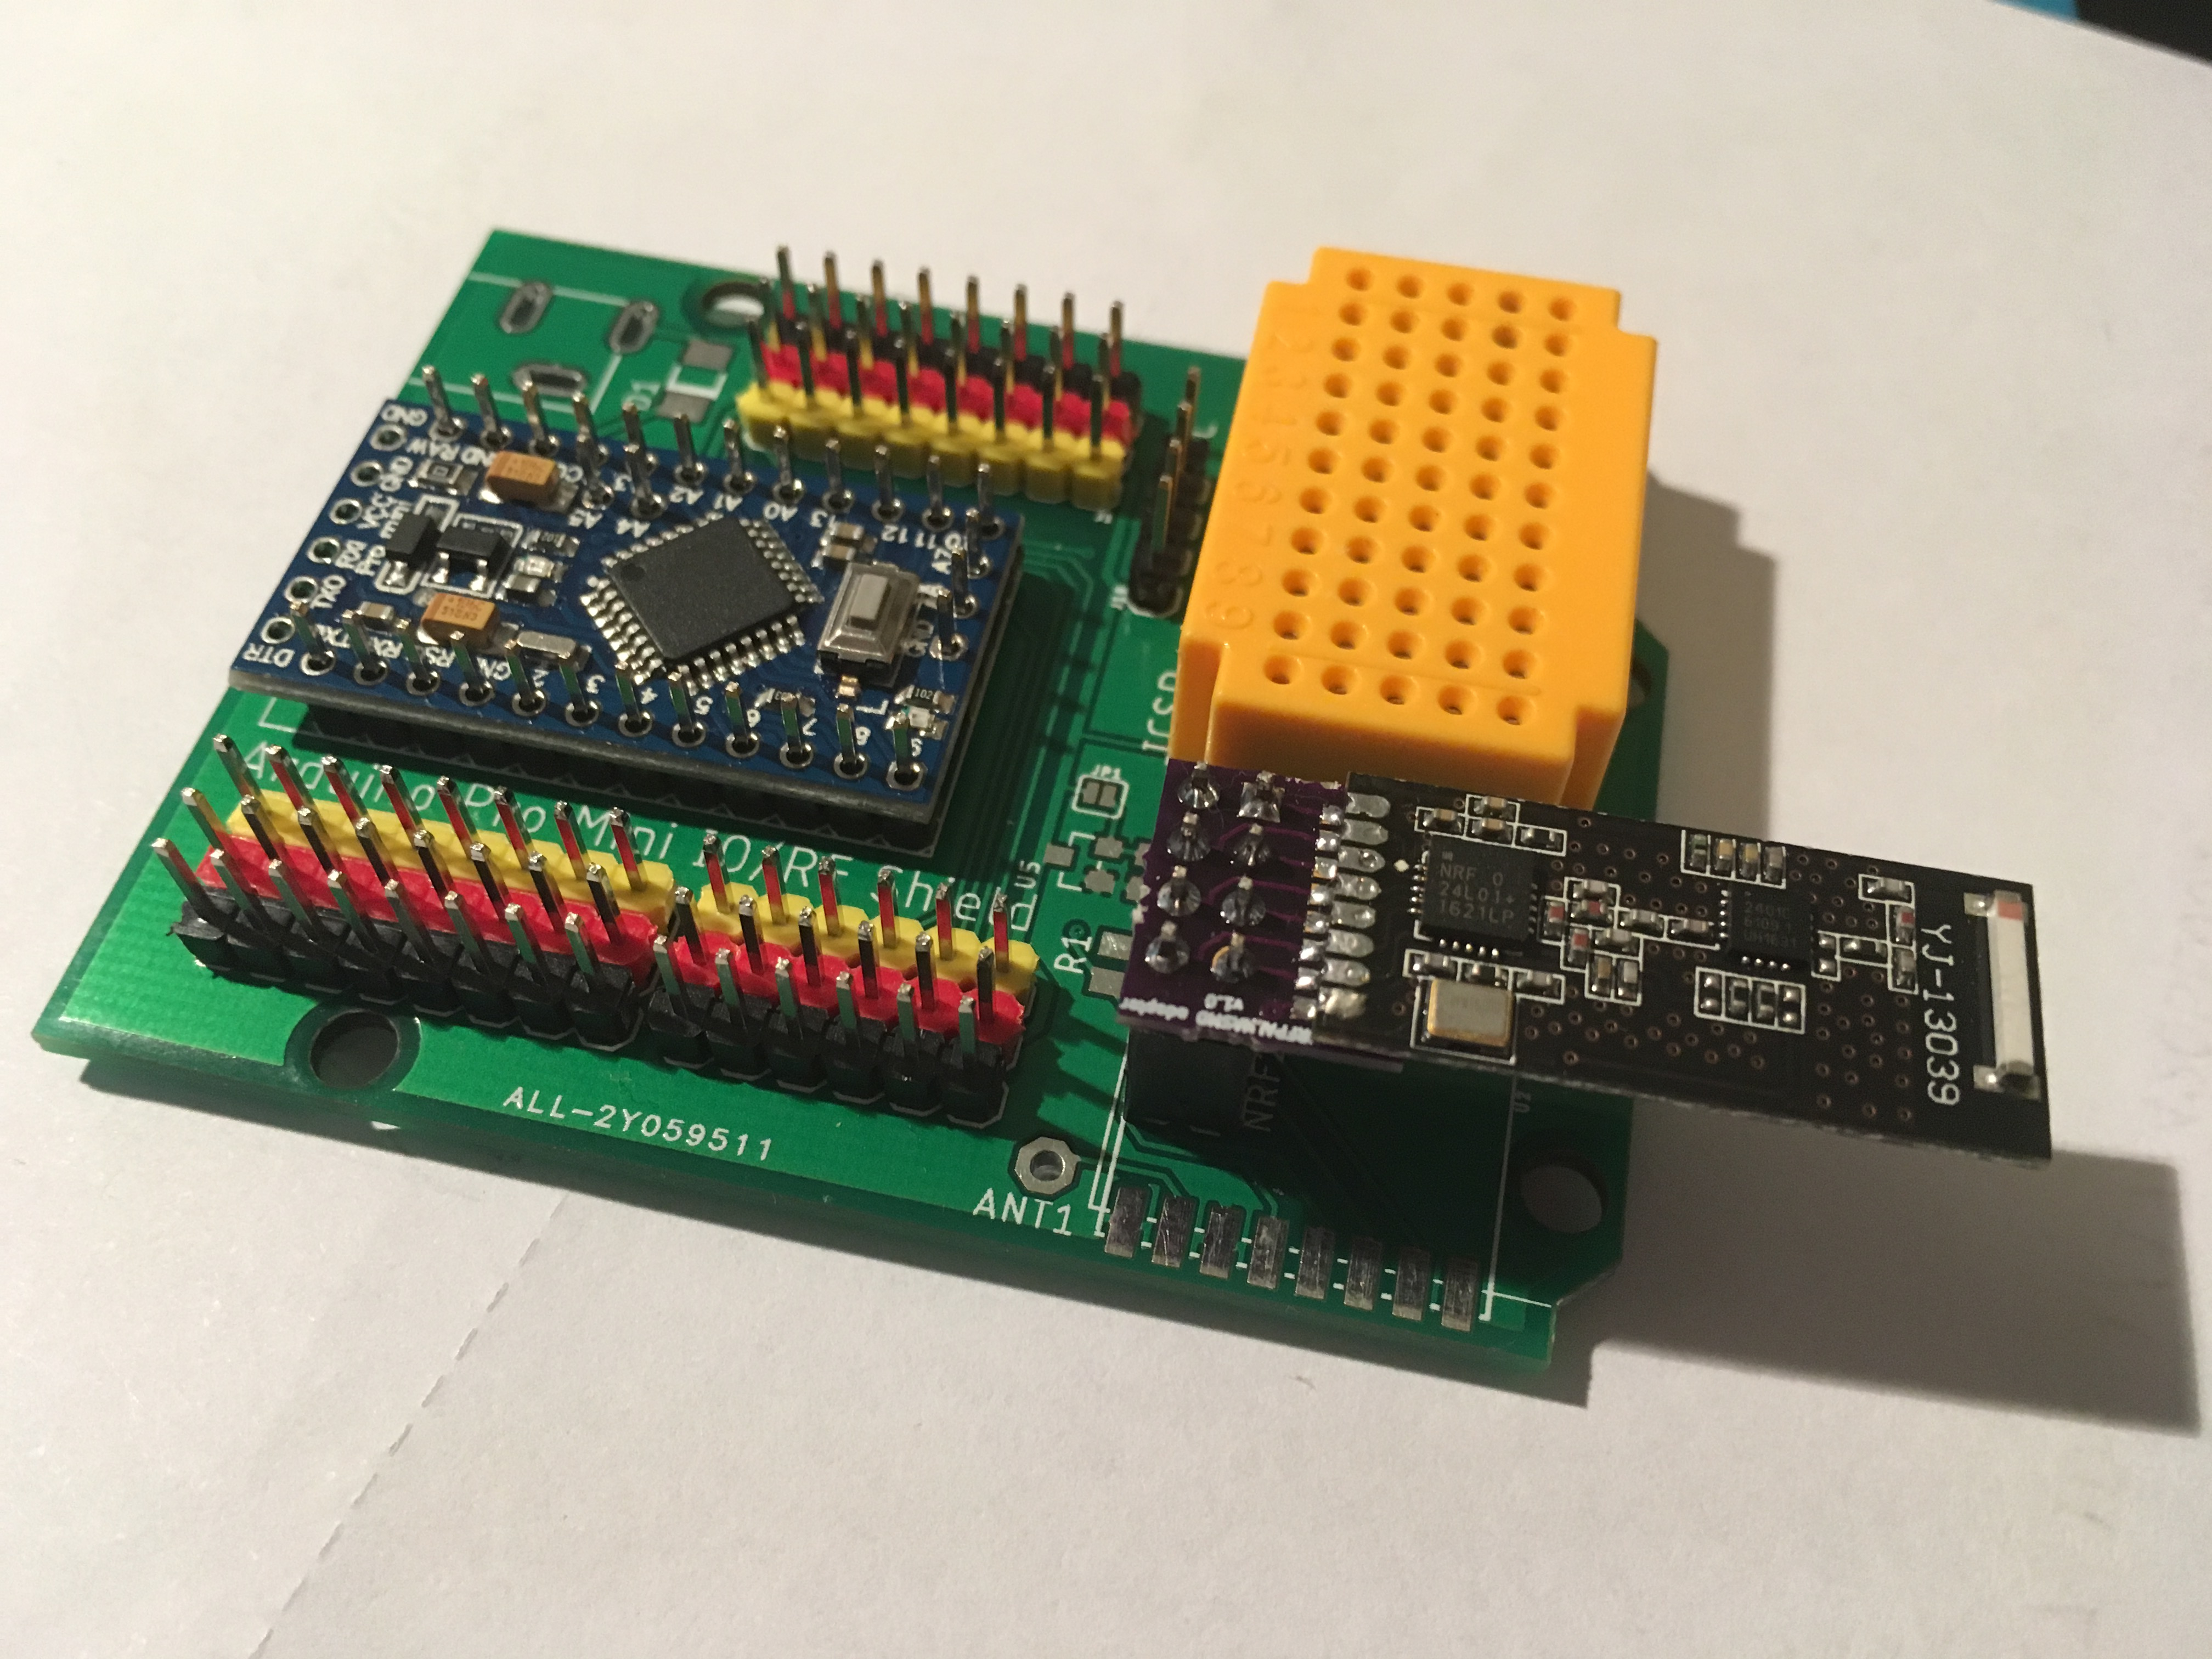 SMD nrf24l01+ modules can be used with an adapter